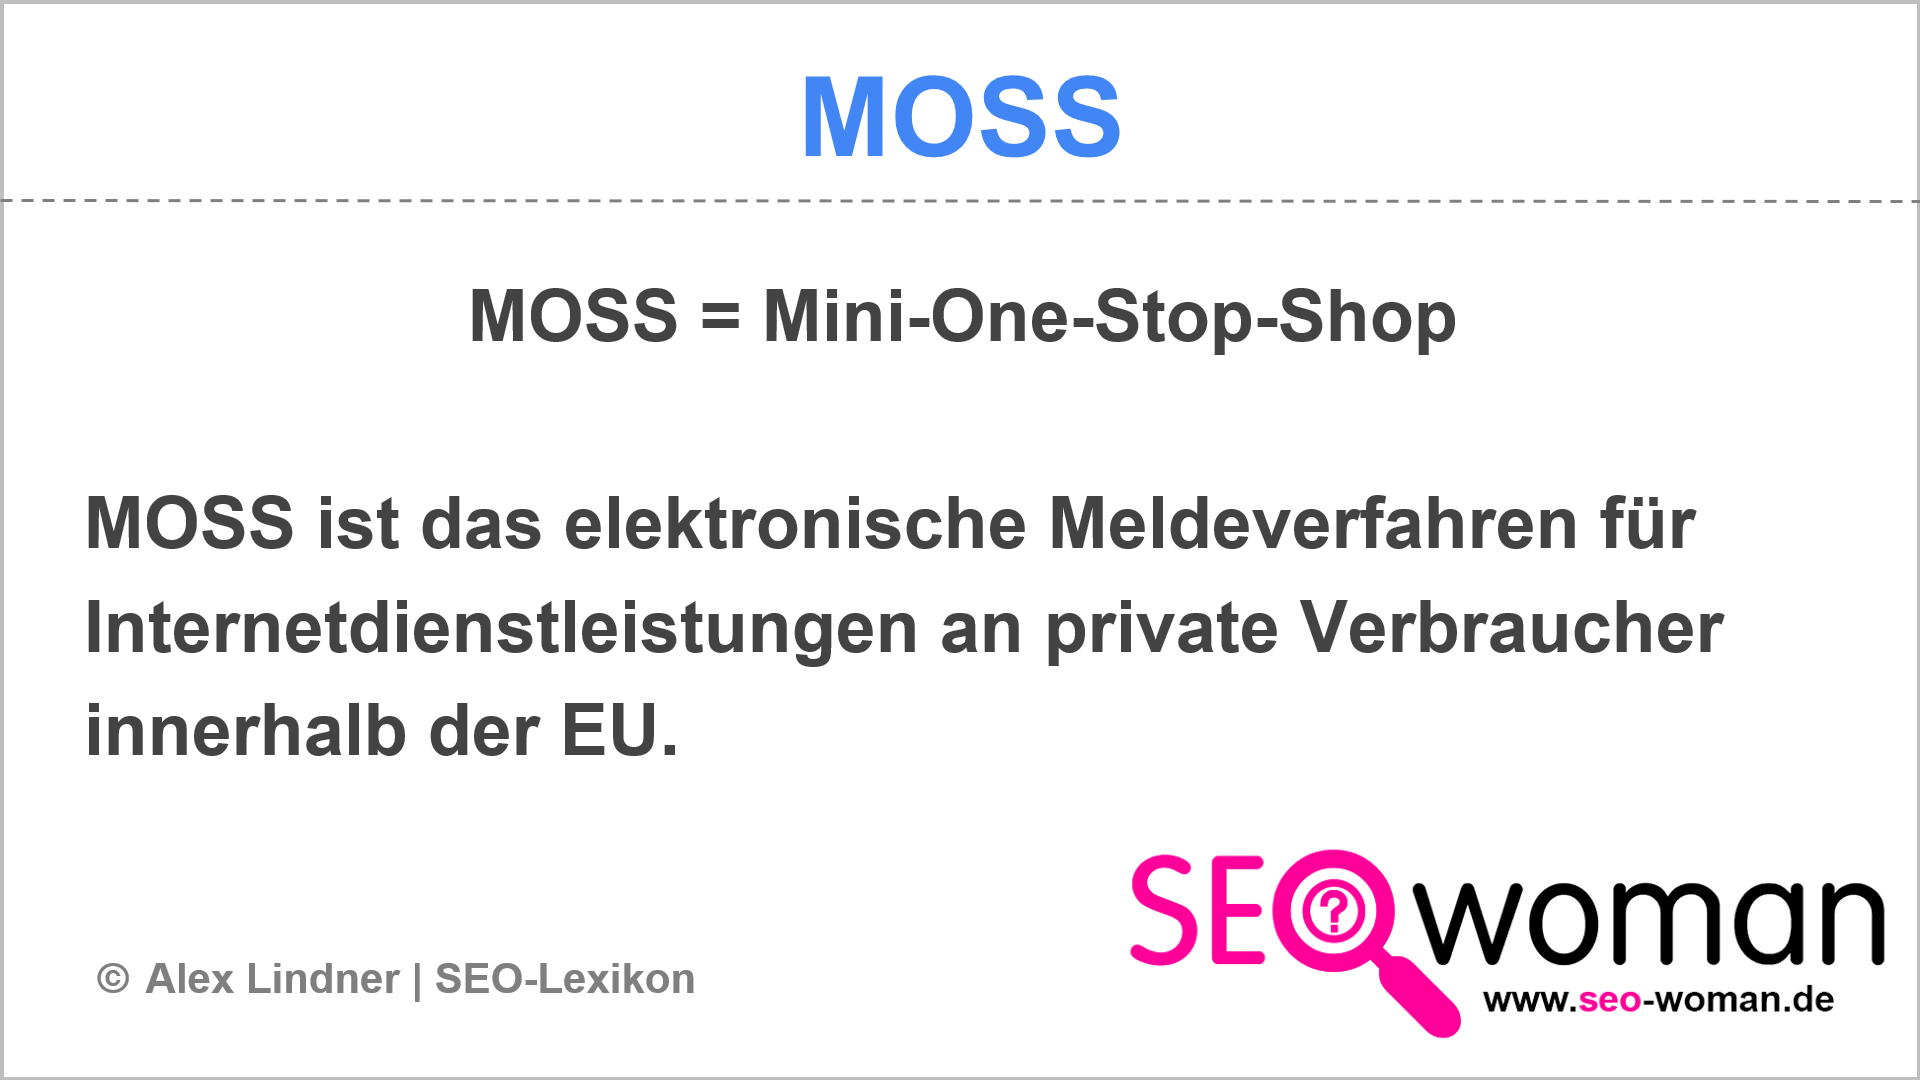 MOSS (Mini-One-Stop-Shop)